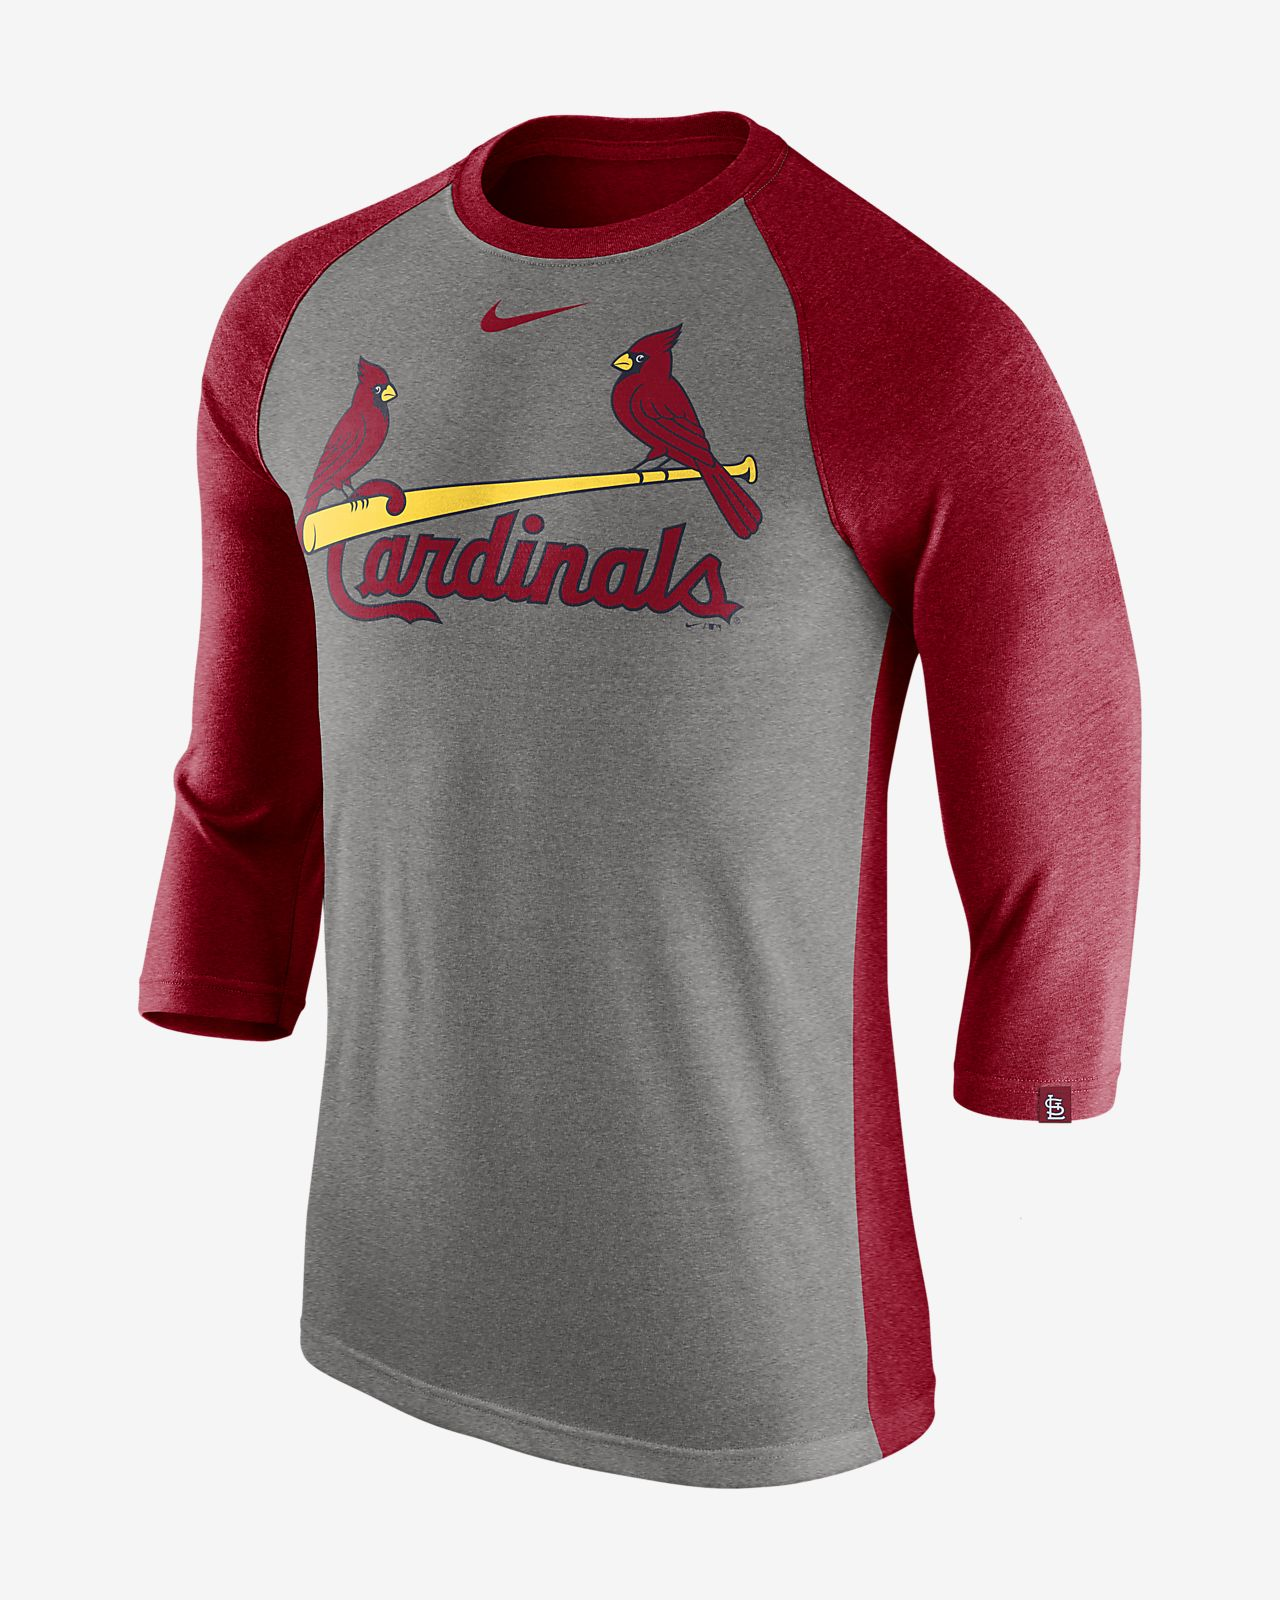 937434e7 Nike Tri-Blend (MLB Cardinals) Men's 3/4-Sleeve T-Shirt. Nike.com